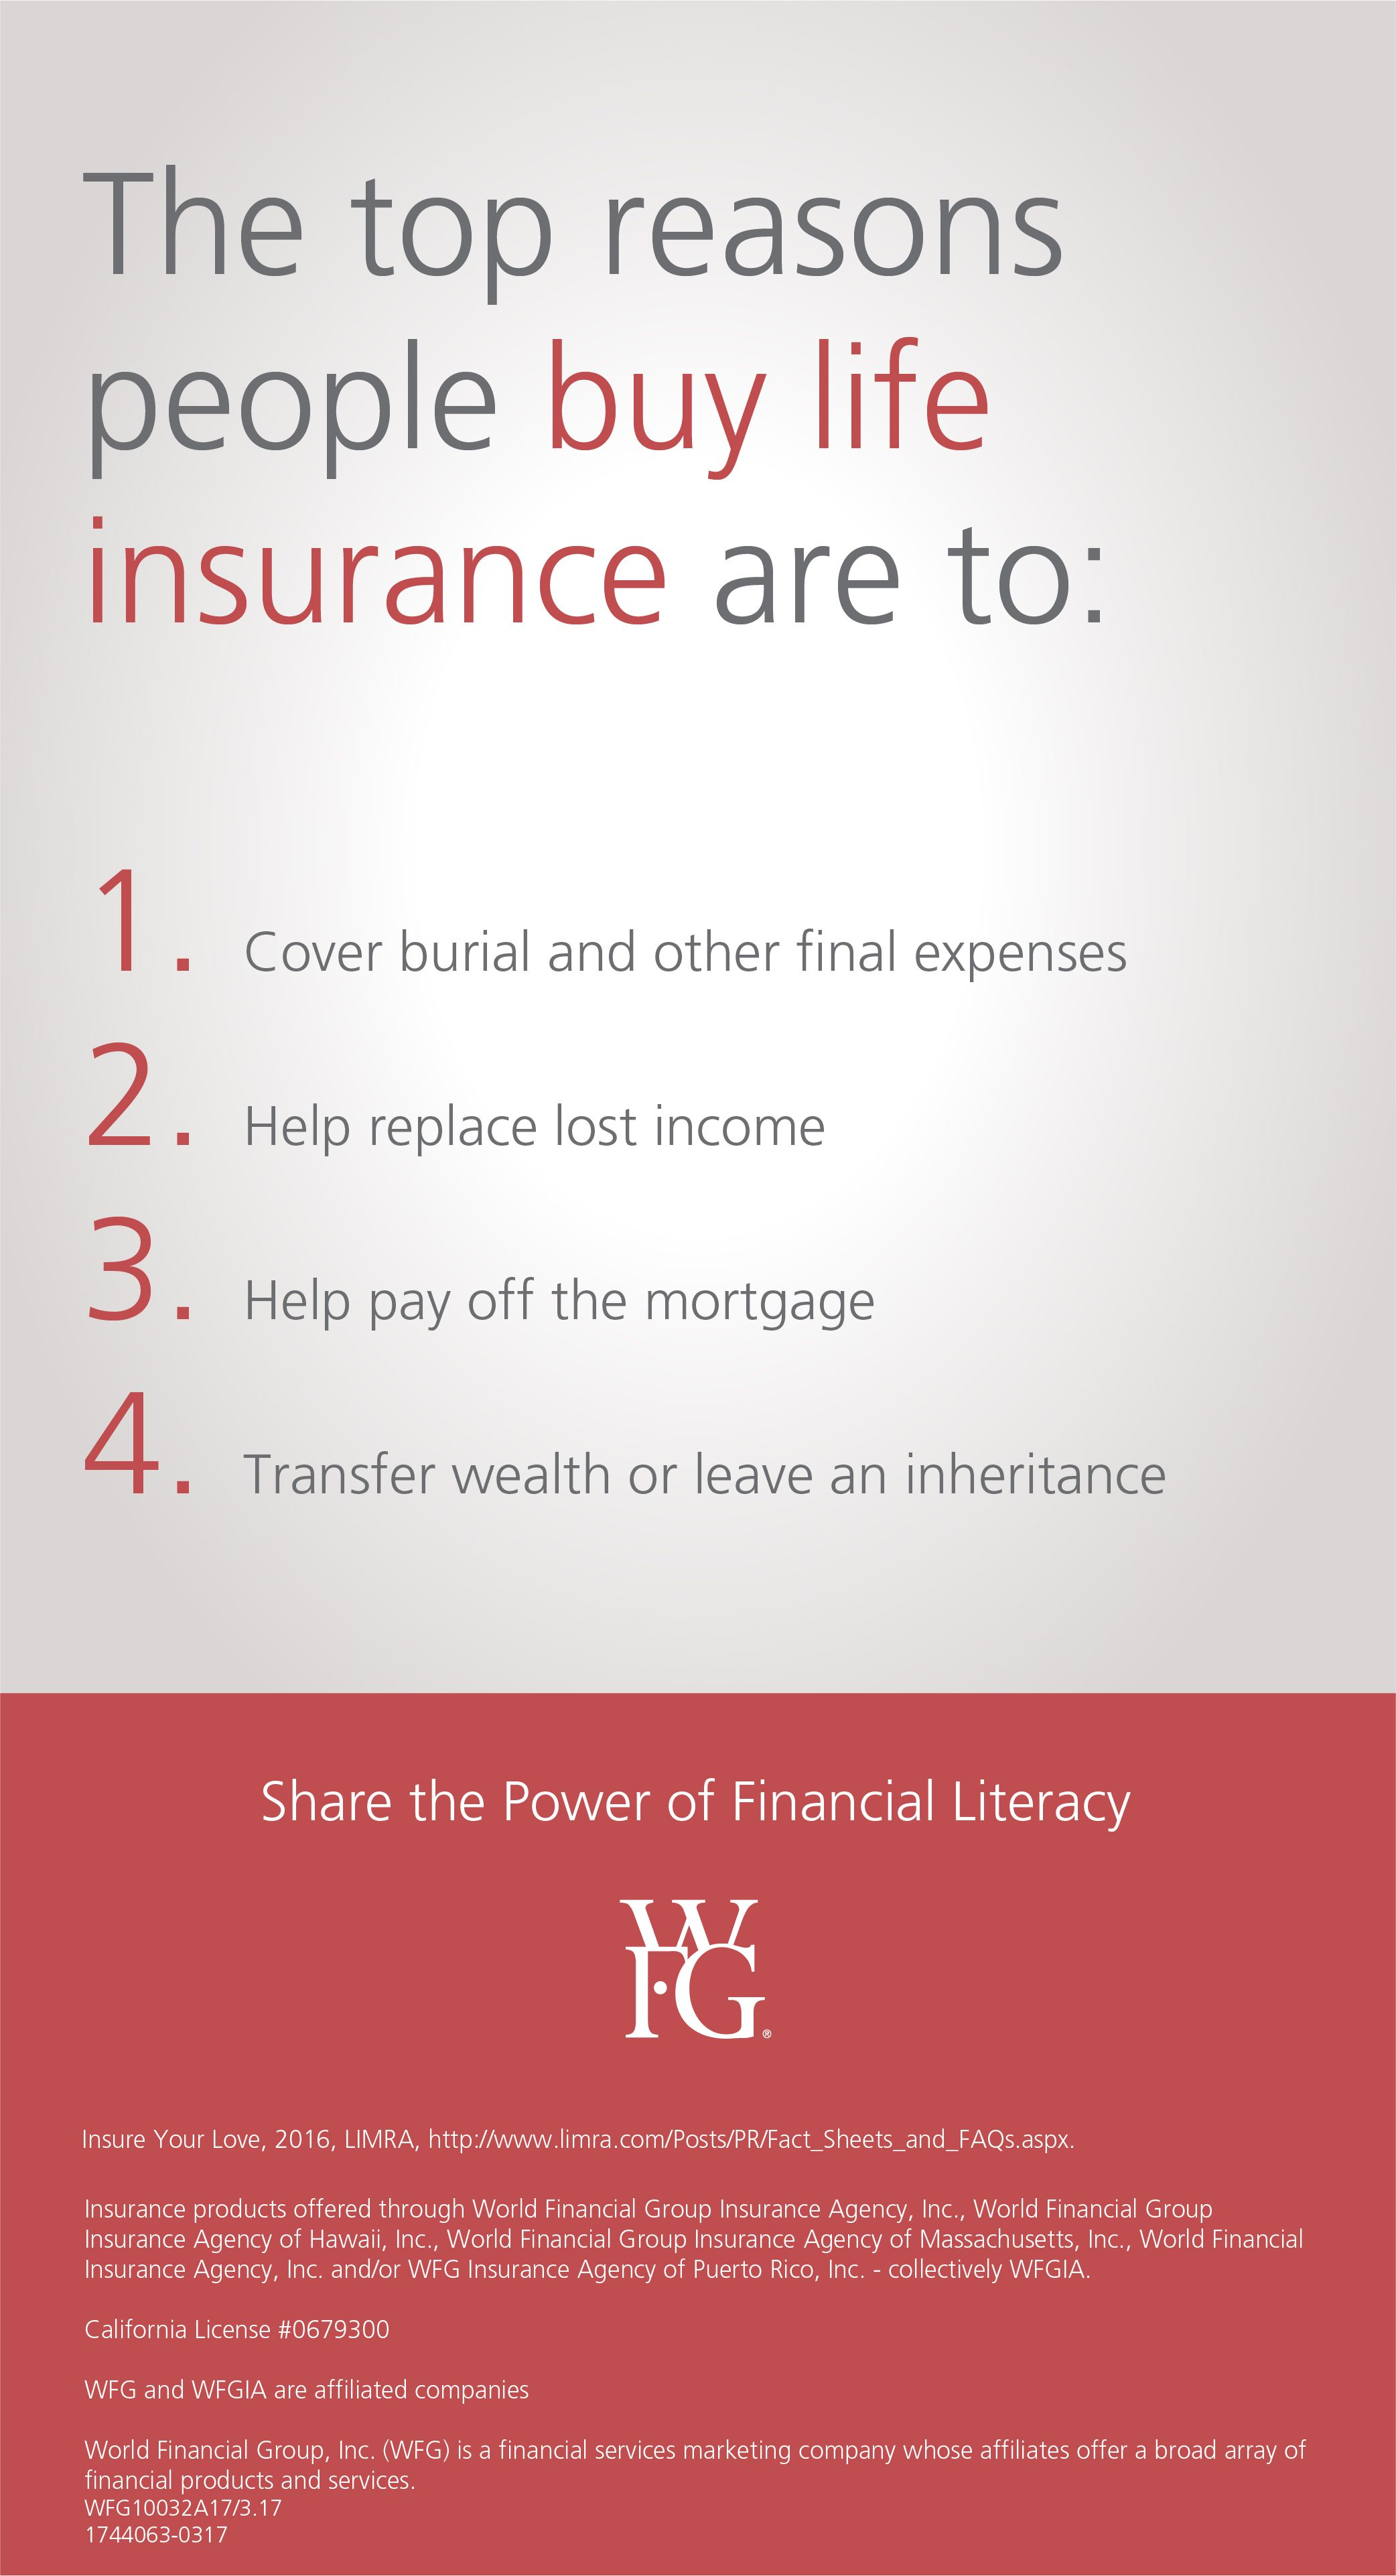 Life Insurance Quote Get A Free Life Insurance Quote From Our Agency And Start Saving